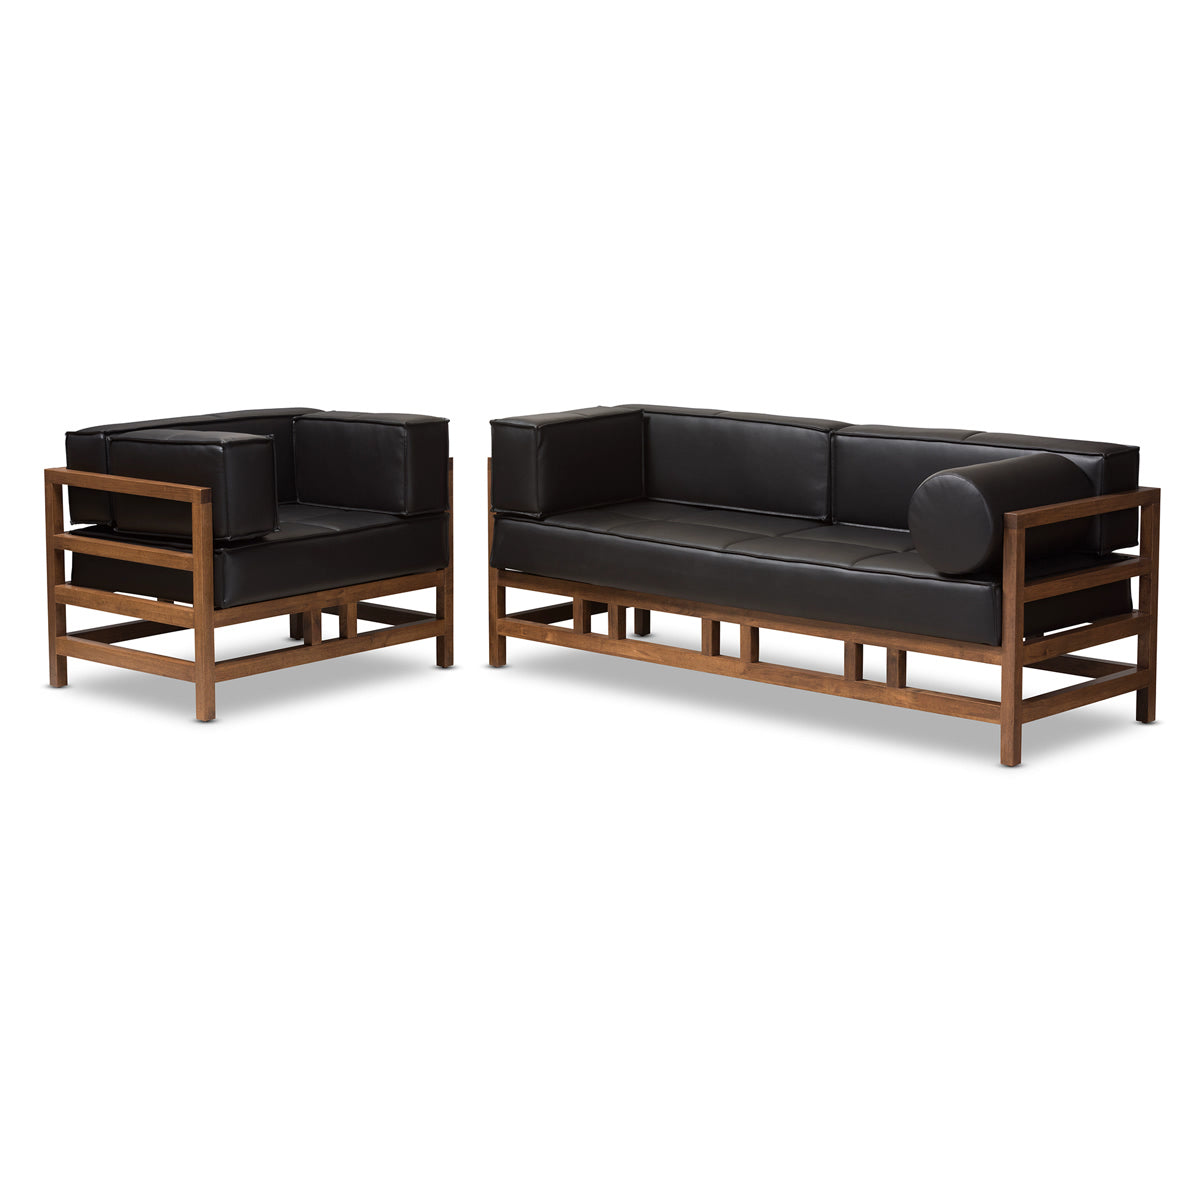 Baxton Studio Shaw Mid-Century Modern Pine Black Faux Leather Walnut Wood 2-Piece Living Room Sofa Set Baxton Studio-0-Minimal And Modern - 1